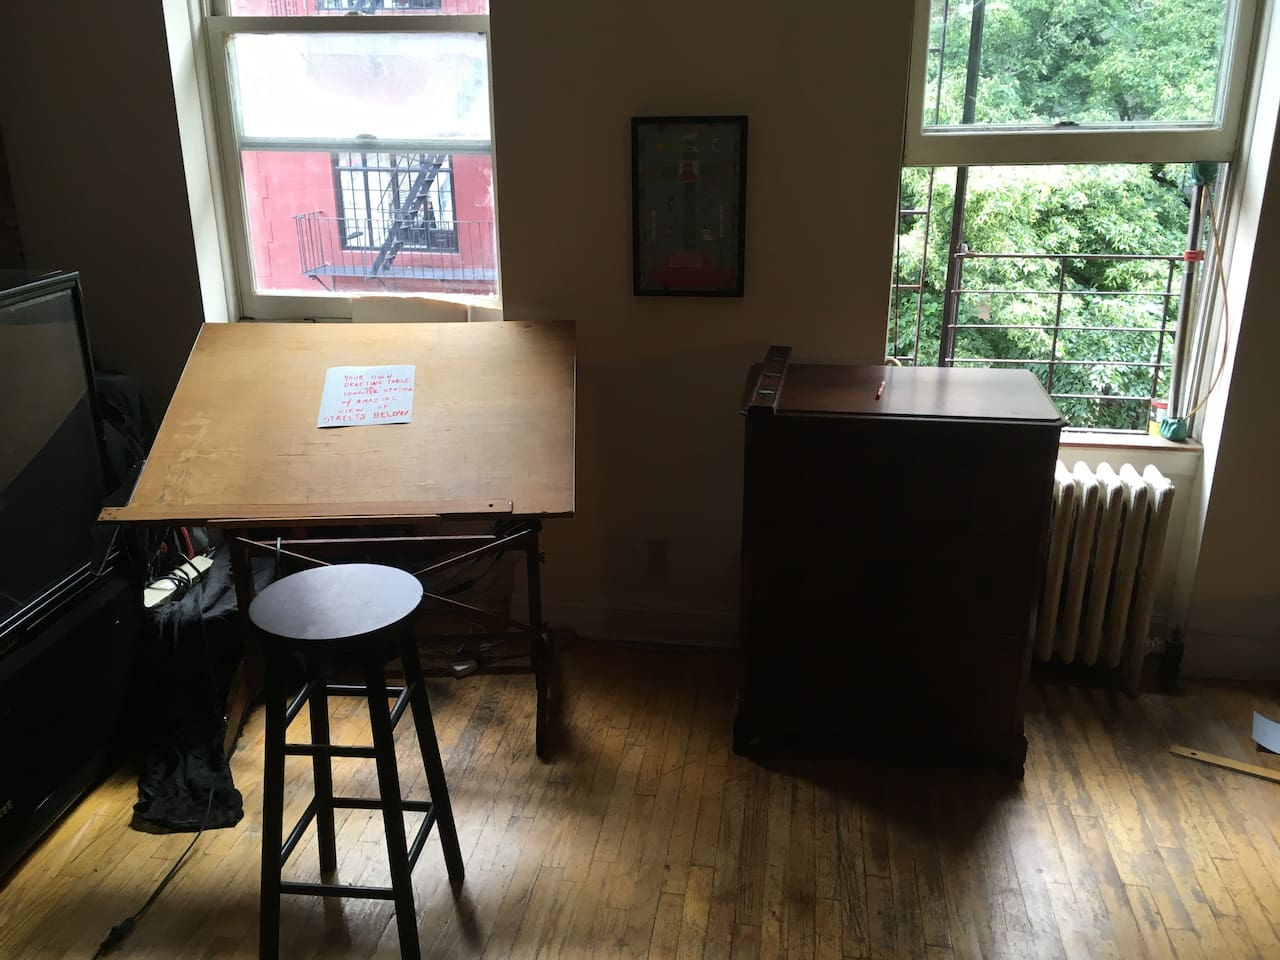 You get the drafting table overlooking the unlikely intersection of W 4/W 10 St.'s in the heart of historic Greenwich Village. Great for your computer or anything else.